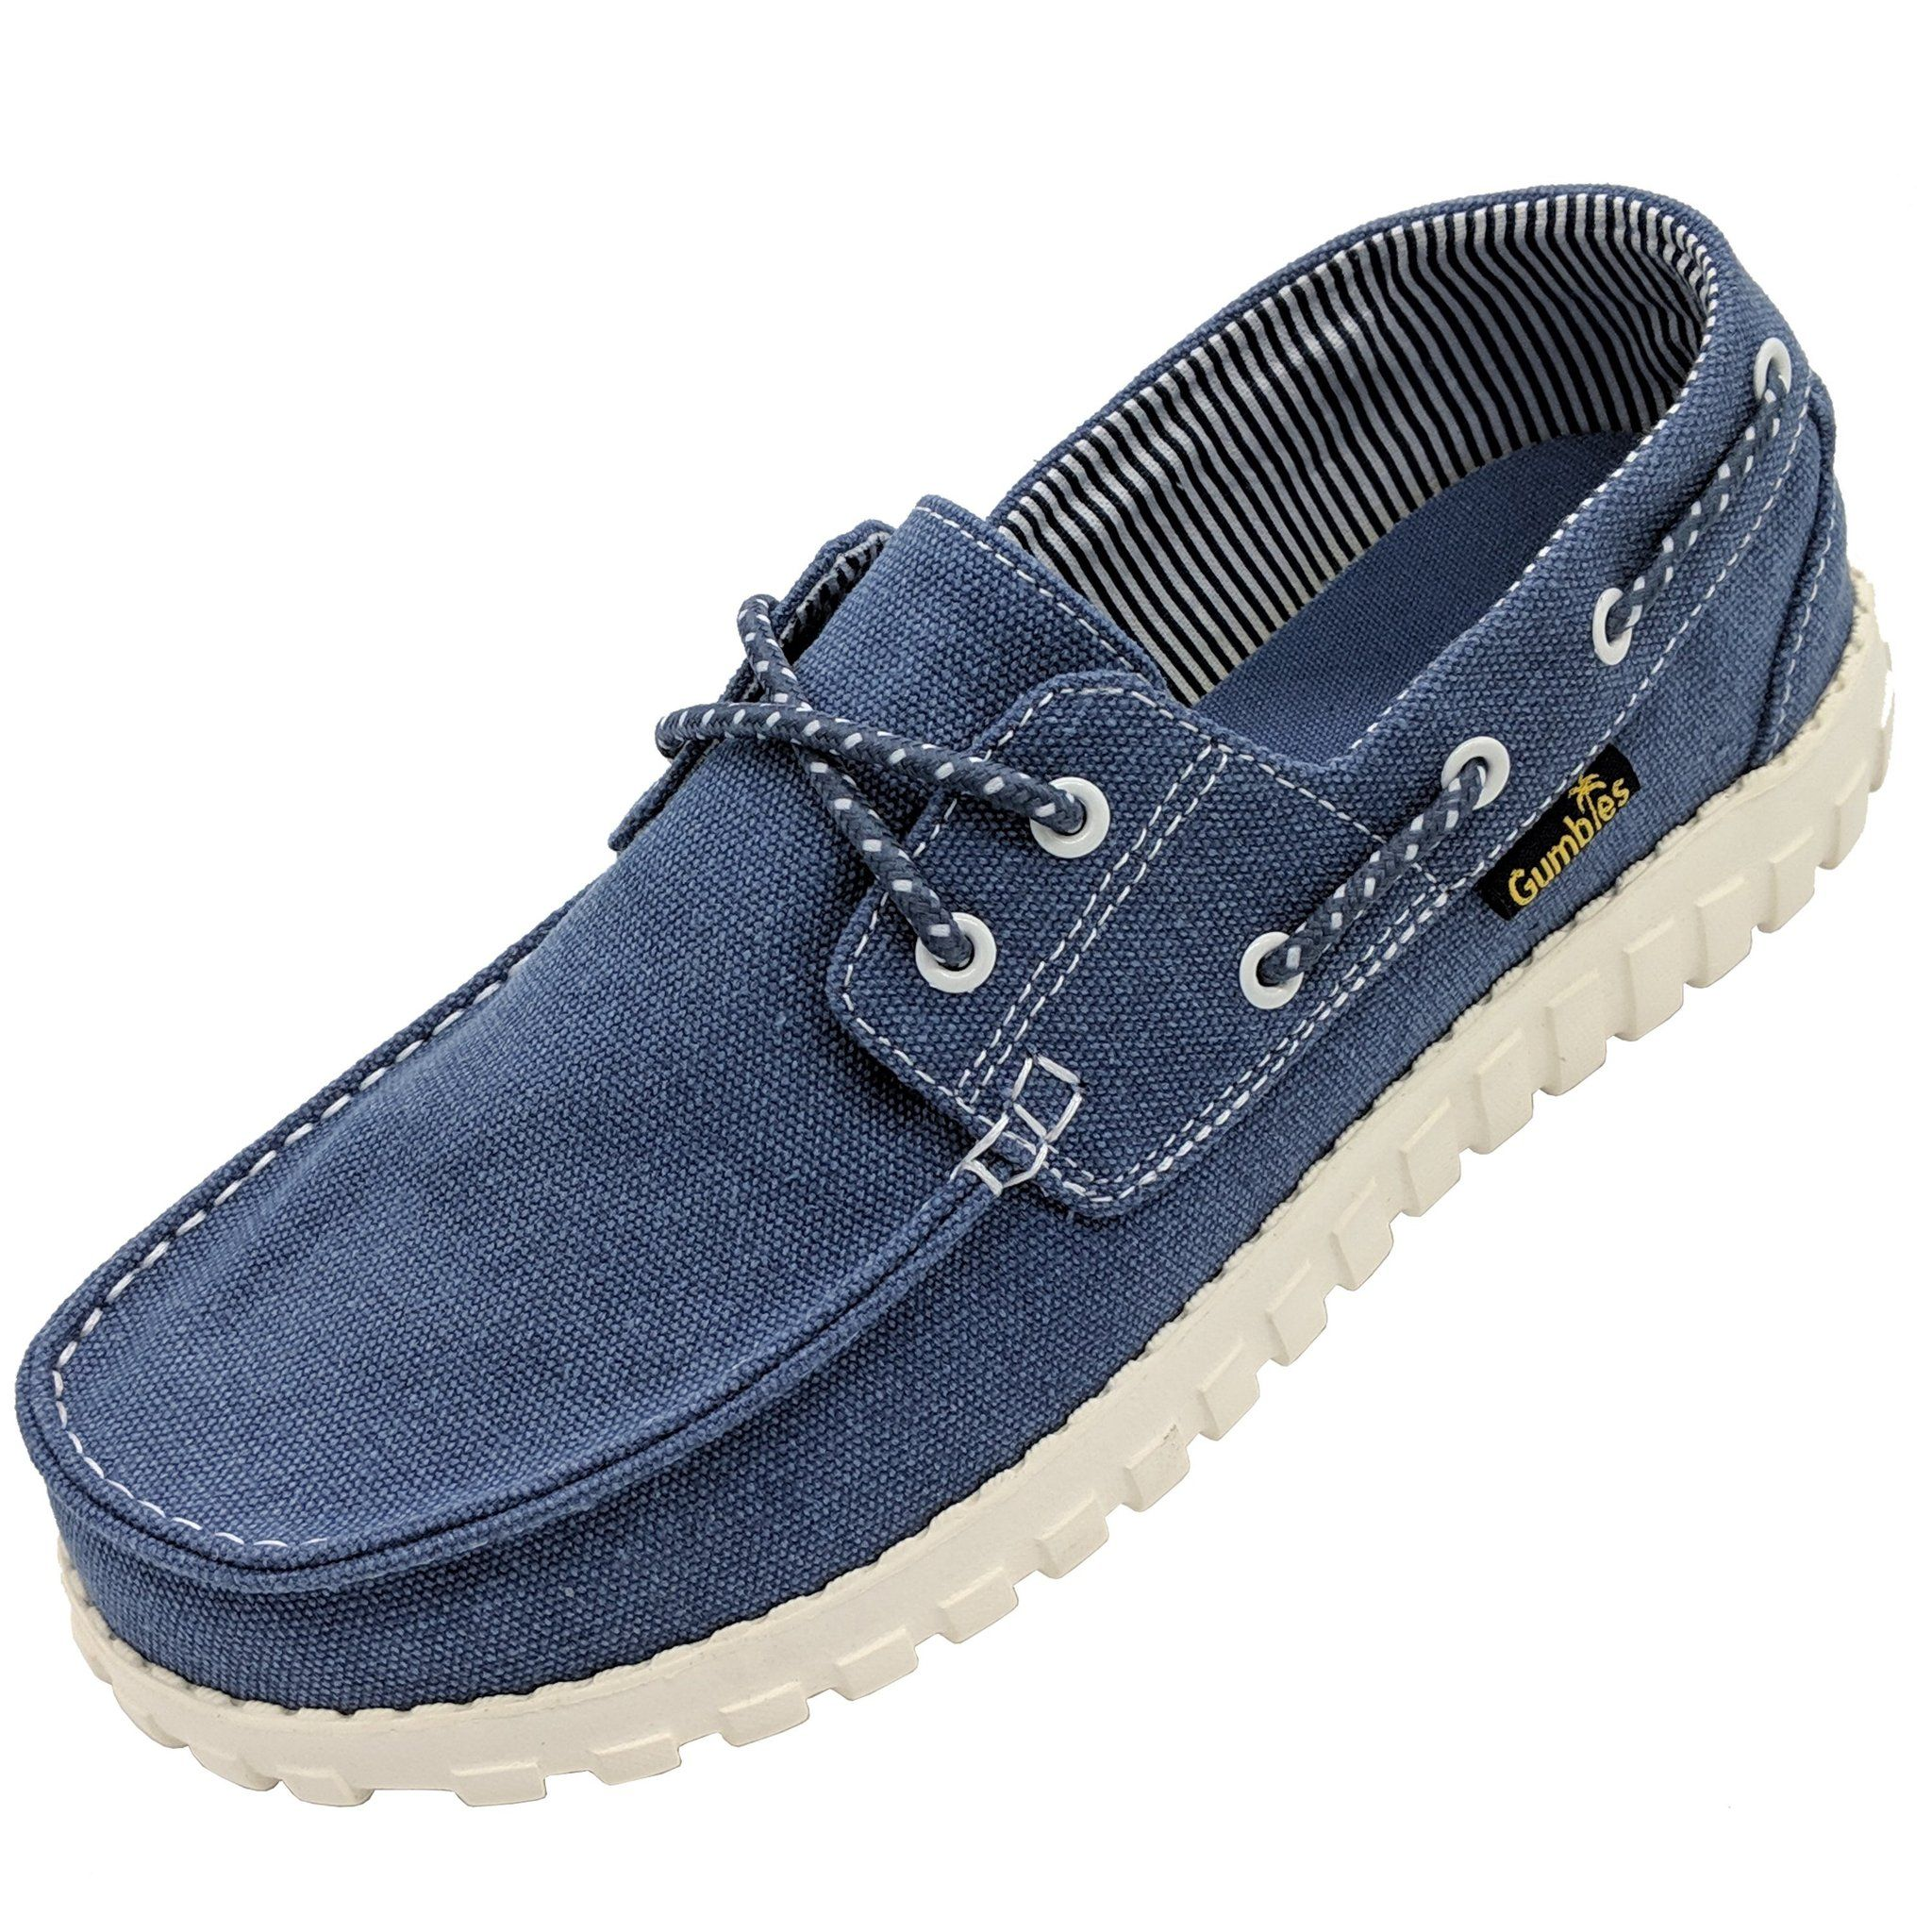 Gumbies Deck Mate Canvas Shoes Navy Leather Boat Shoes